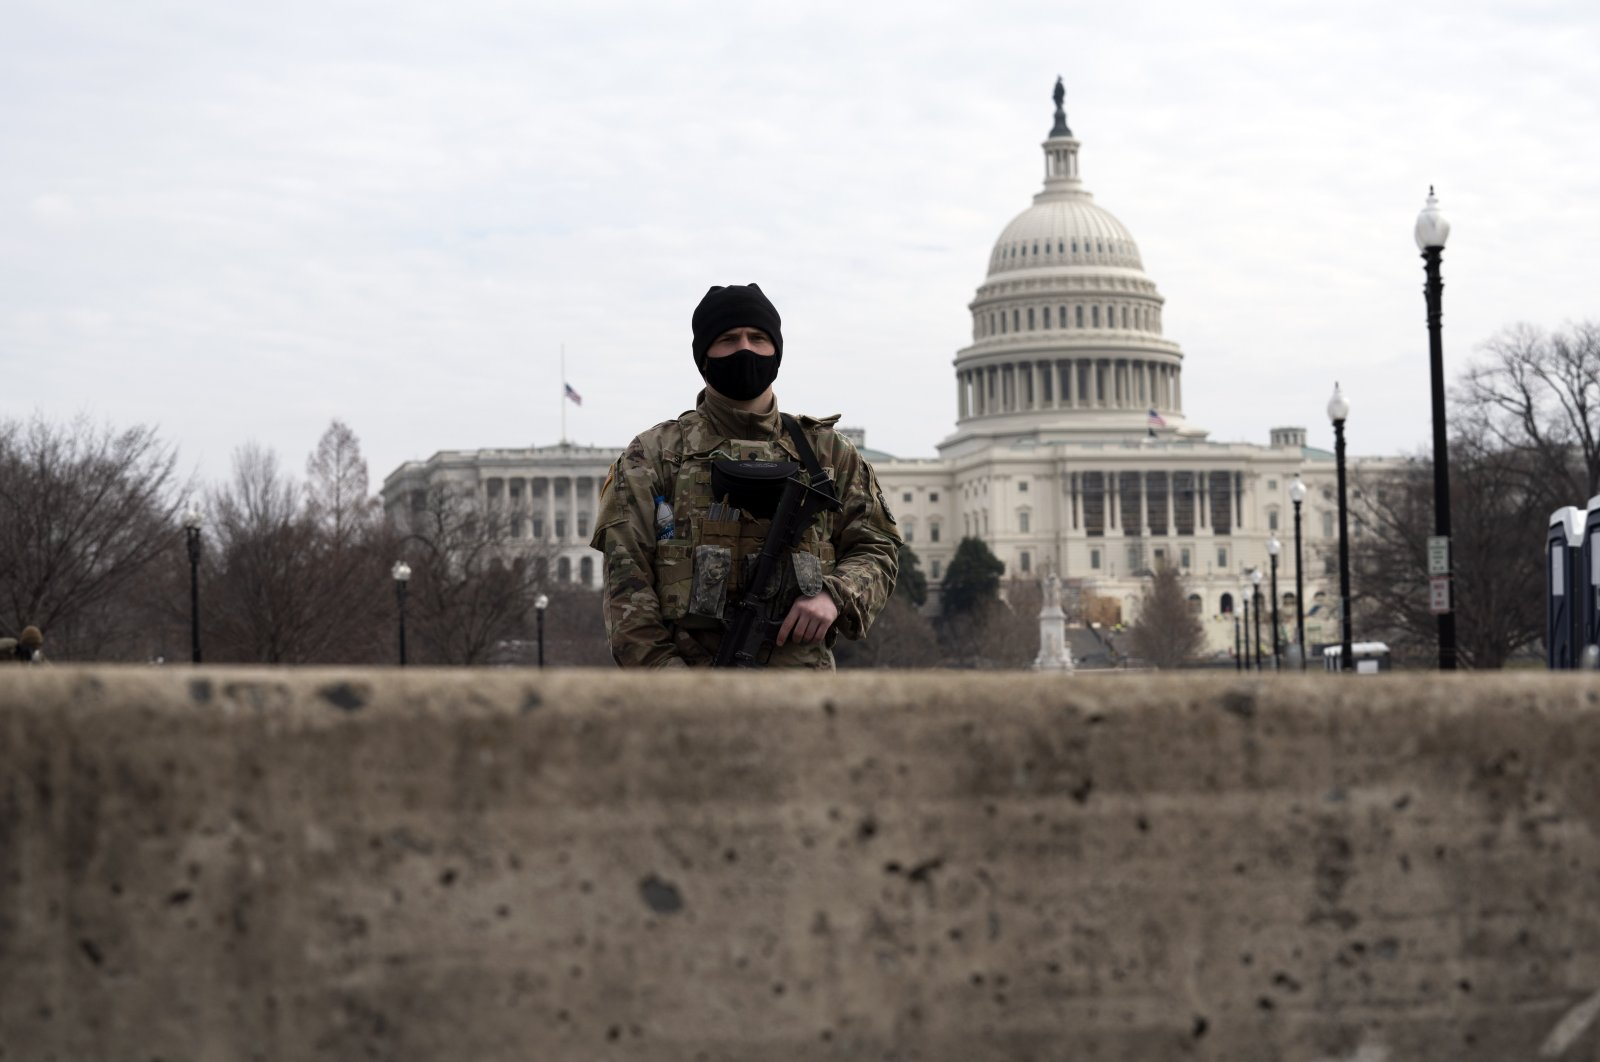 Members of the National Guard patrol the area outside of the U.S. Capitol during the impeachment trial of former President Donald Trump at the Capitol in Washington, D.C., U.S., Feb. 10, 2021. (AP Photo)